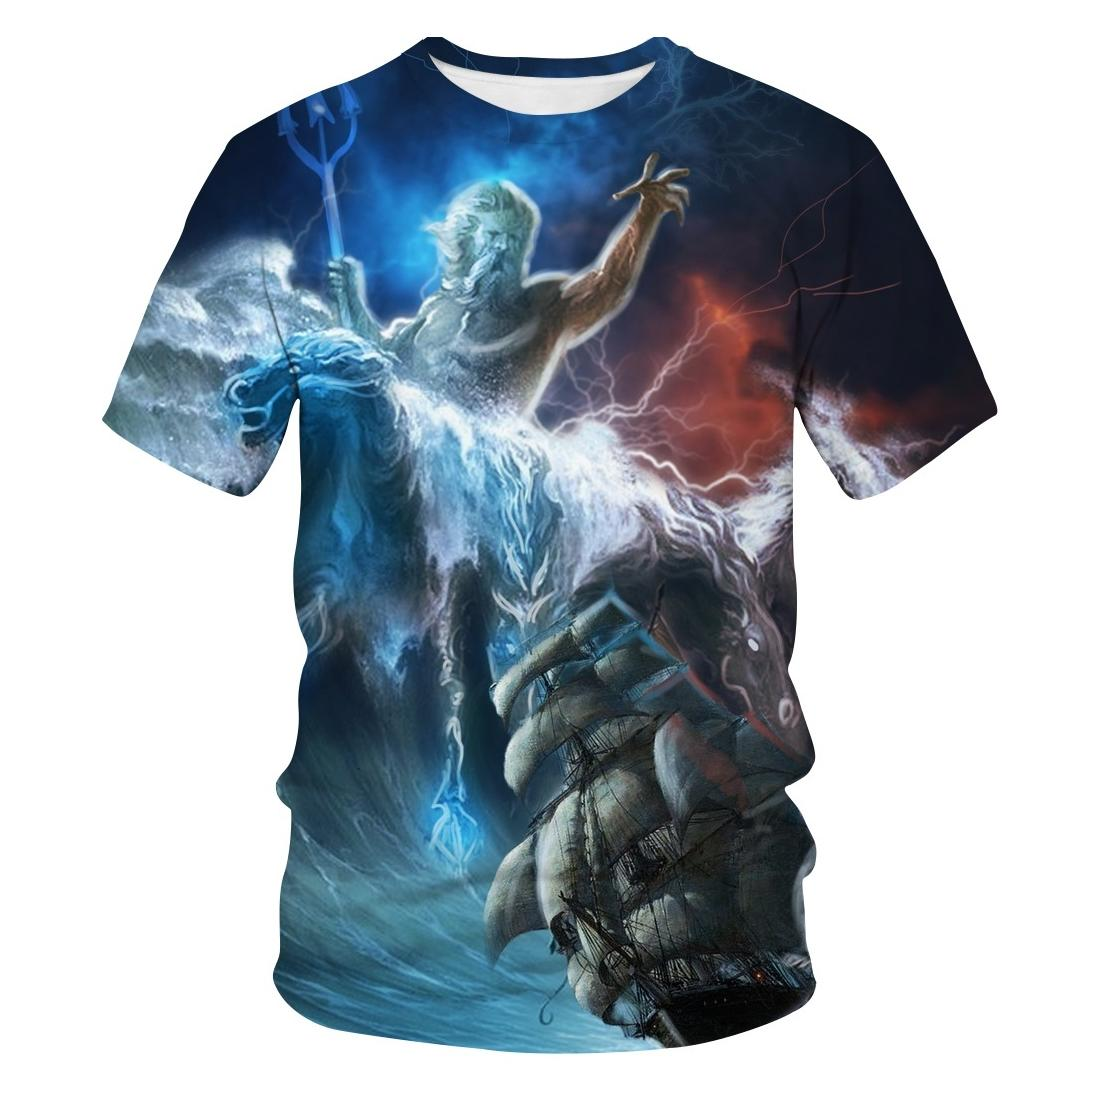 2020 New Hot Sale Fashion Trend 3D New T-shirt Haiwang / Poseidon Personality New T-shirt Haizhizi T-shirt O-neck Top&Tees